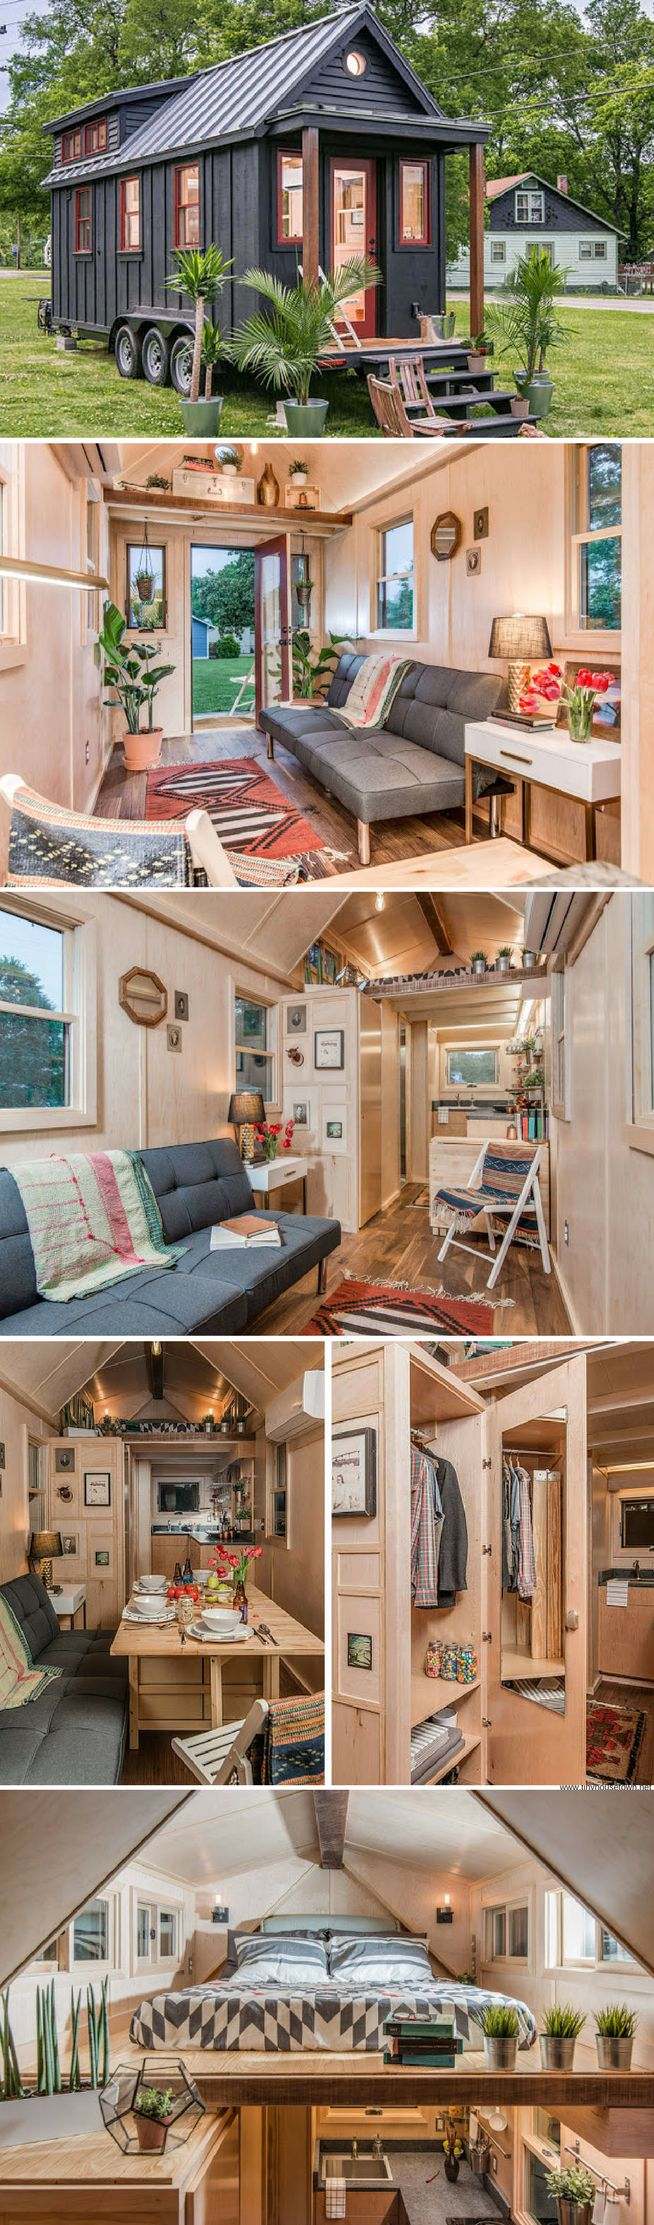 Brilliant 17 Best Ideas About Tiny Homes On Pinterest Tiny Houses Mini Largest Home Design Picture Inspirations Pitcheantrous